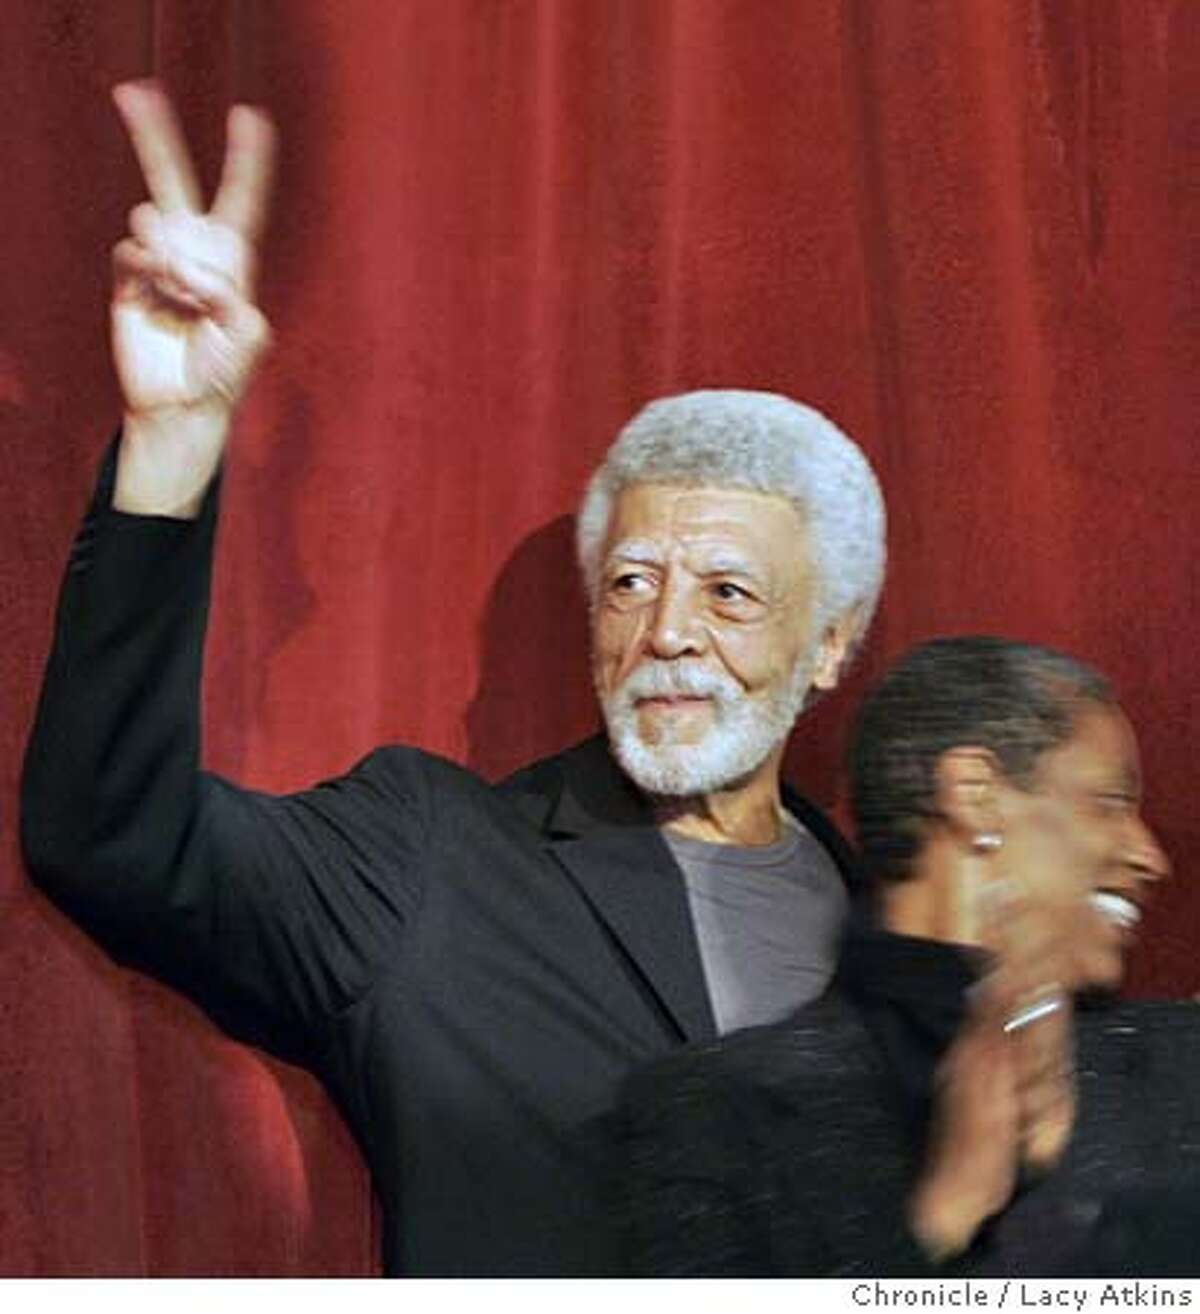 Former U.S. Rep. Ron Dellums and his wife Cynthia at the victory party for the Mayor of Oakland in Oakland,Ca.June 6, 2006. (Lacy Atkins/The Chronicle) Ran on: 06-08-2006 Matthew Chal, an election worker with the county Information Technology Department, takes a breather while tabulating votes. Ran on: 06-08-2006 Matthew Chal, an election worker with the county Information Technology Department, takes a breather while tabulating votes.